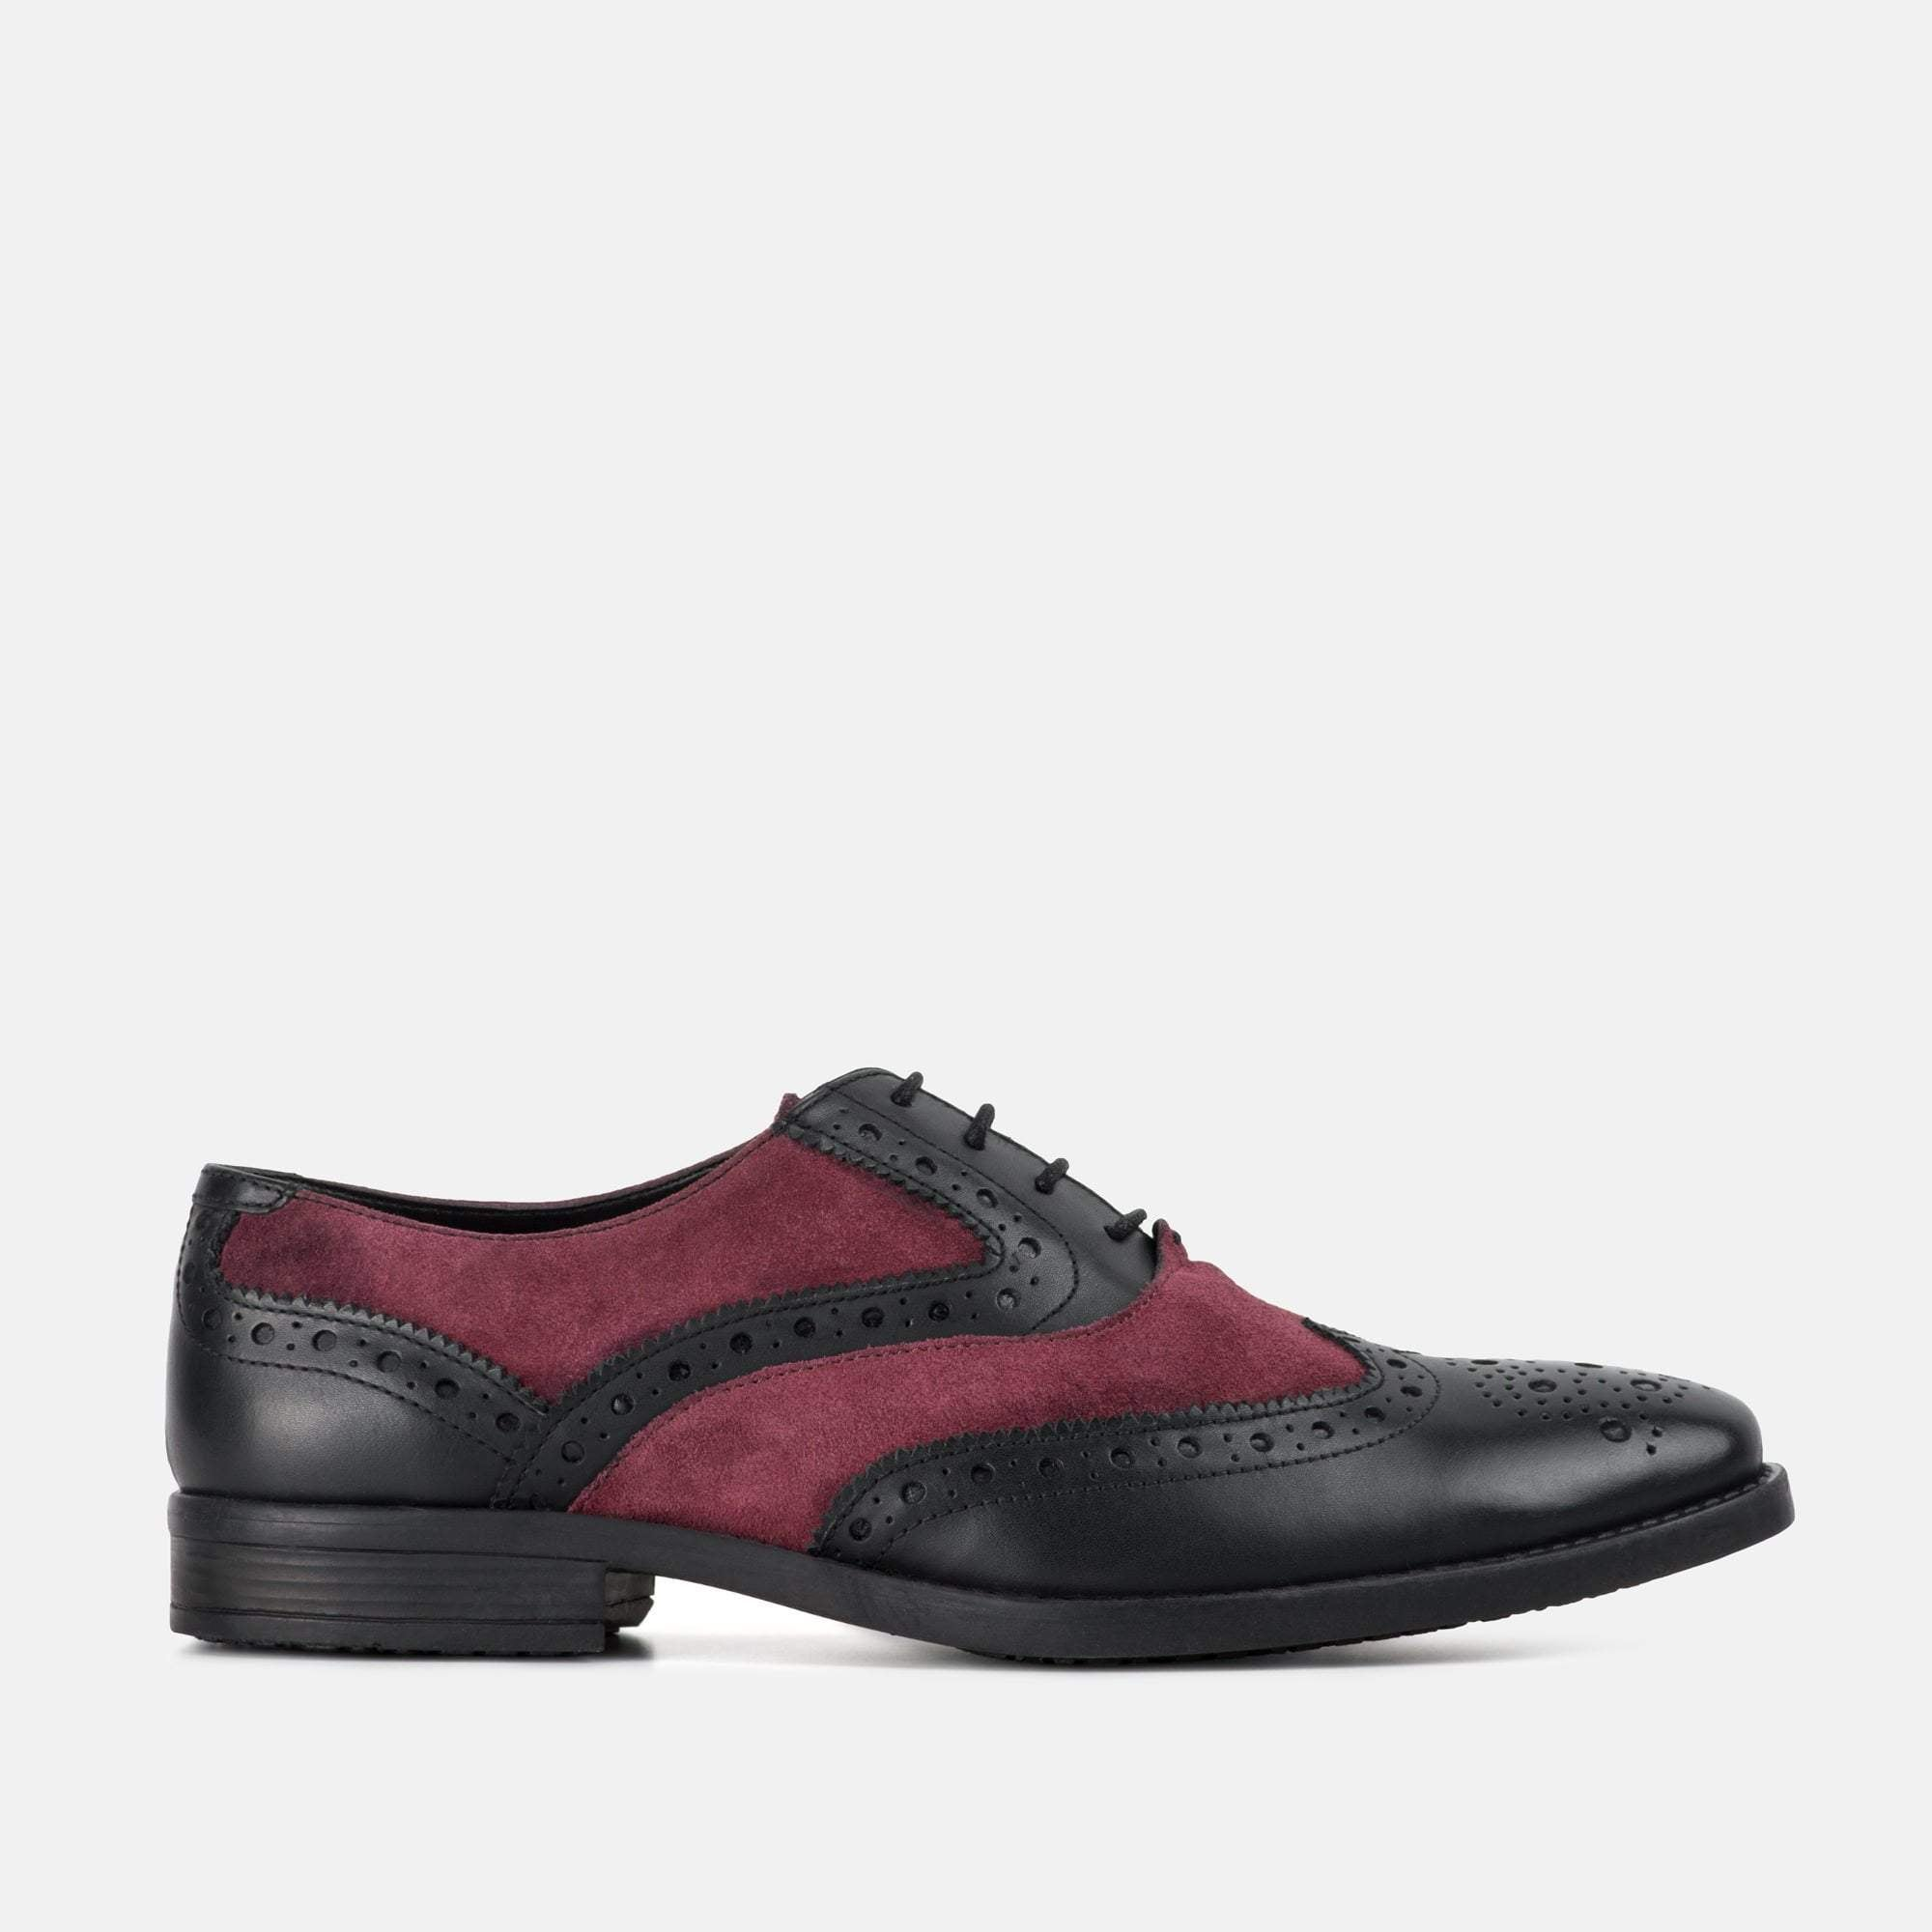 Redfoot Footwear UK 6 / EURO 39 / US 7 / Black/Bordo / Leather THOMPSON BLACK & BORDO